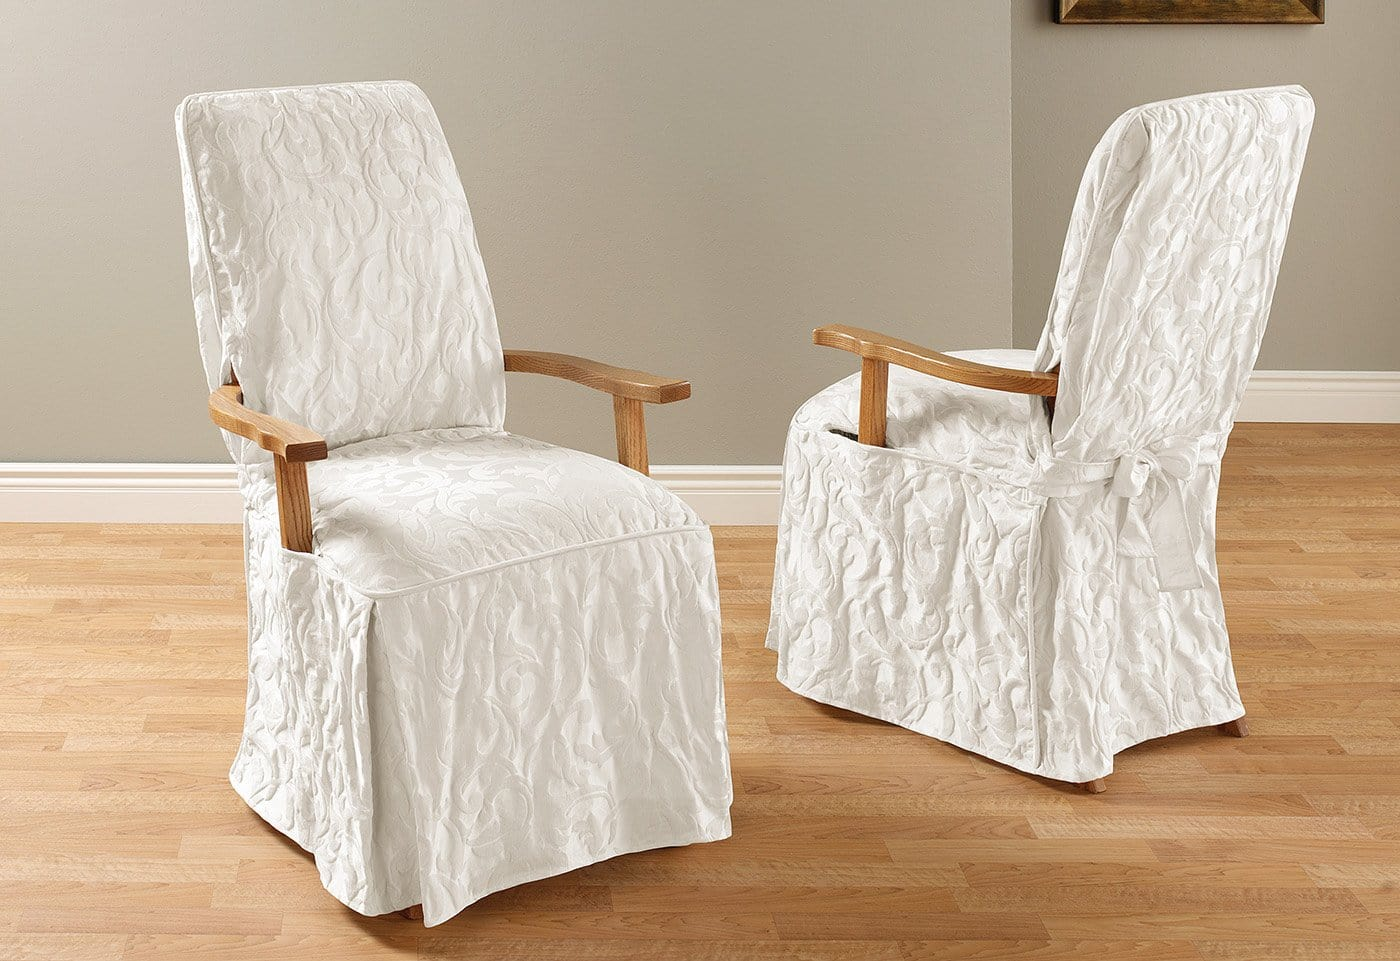 Matelasse Damask Long With Arms Arm Long Dining Chair Slipcover